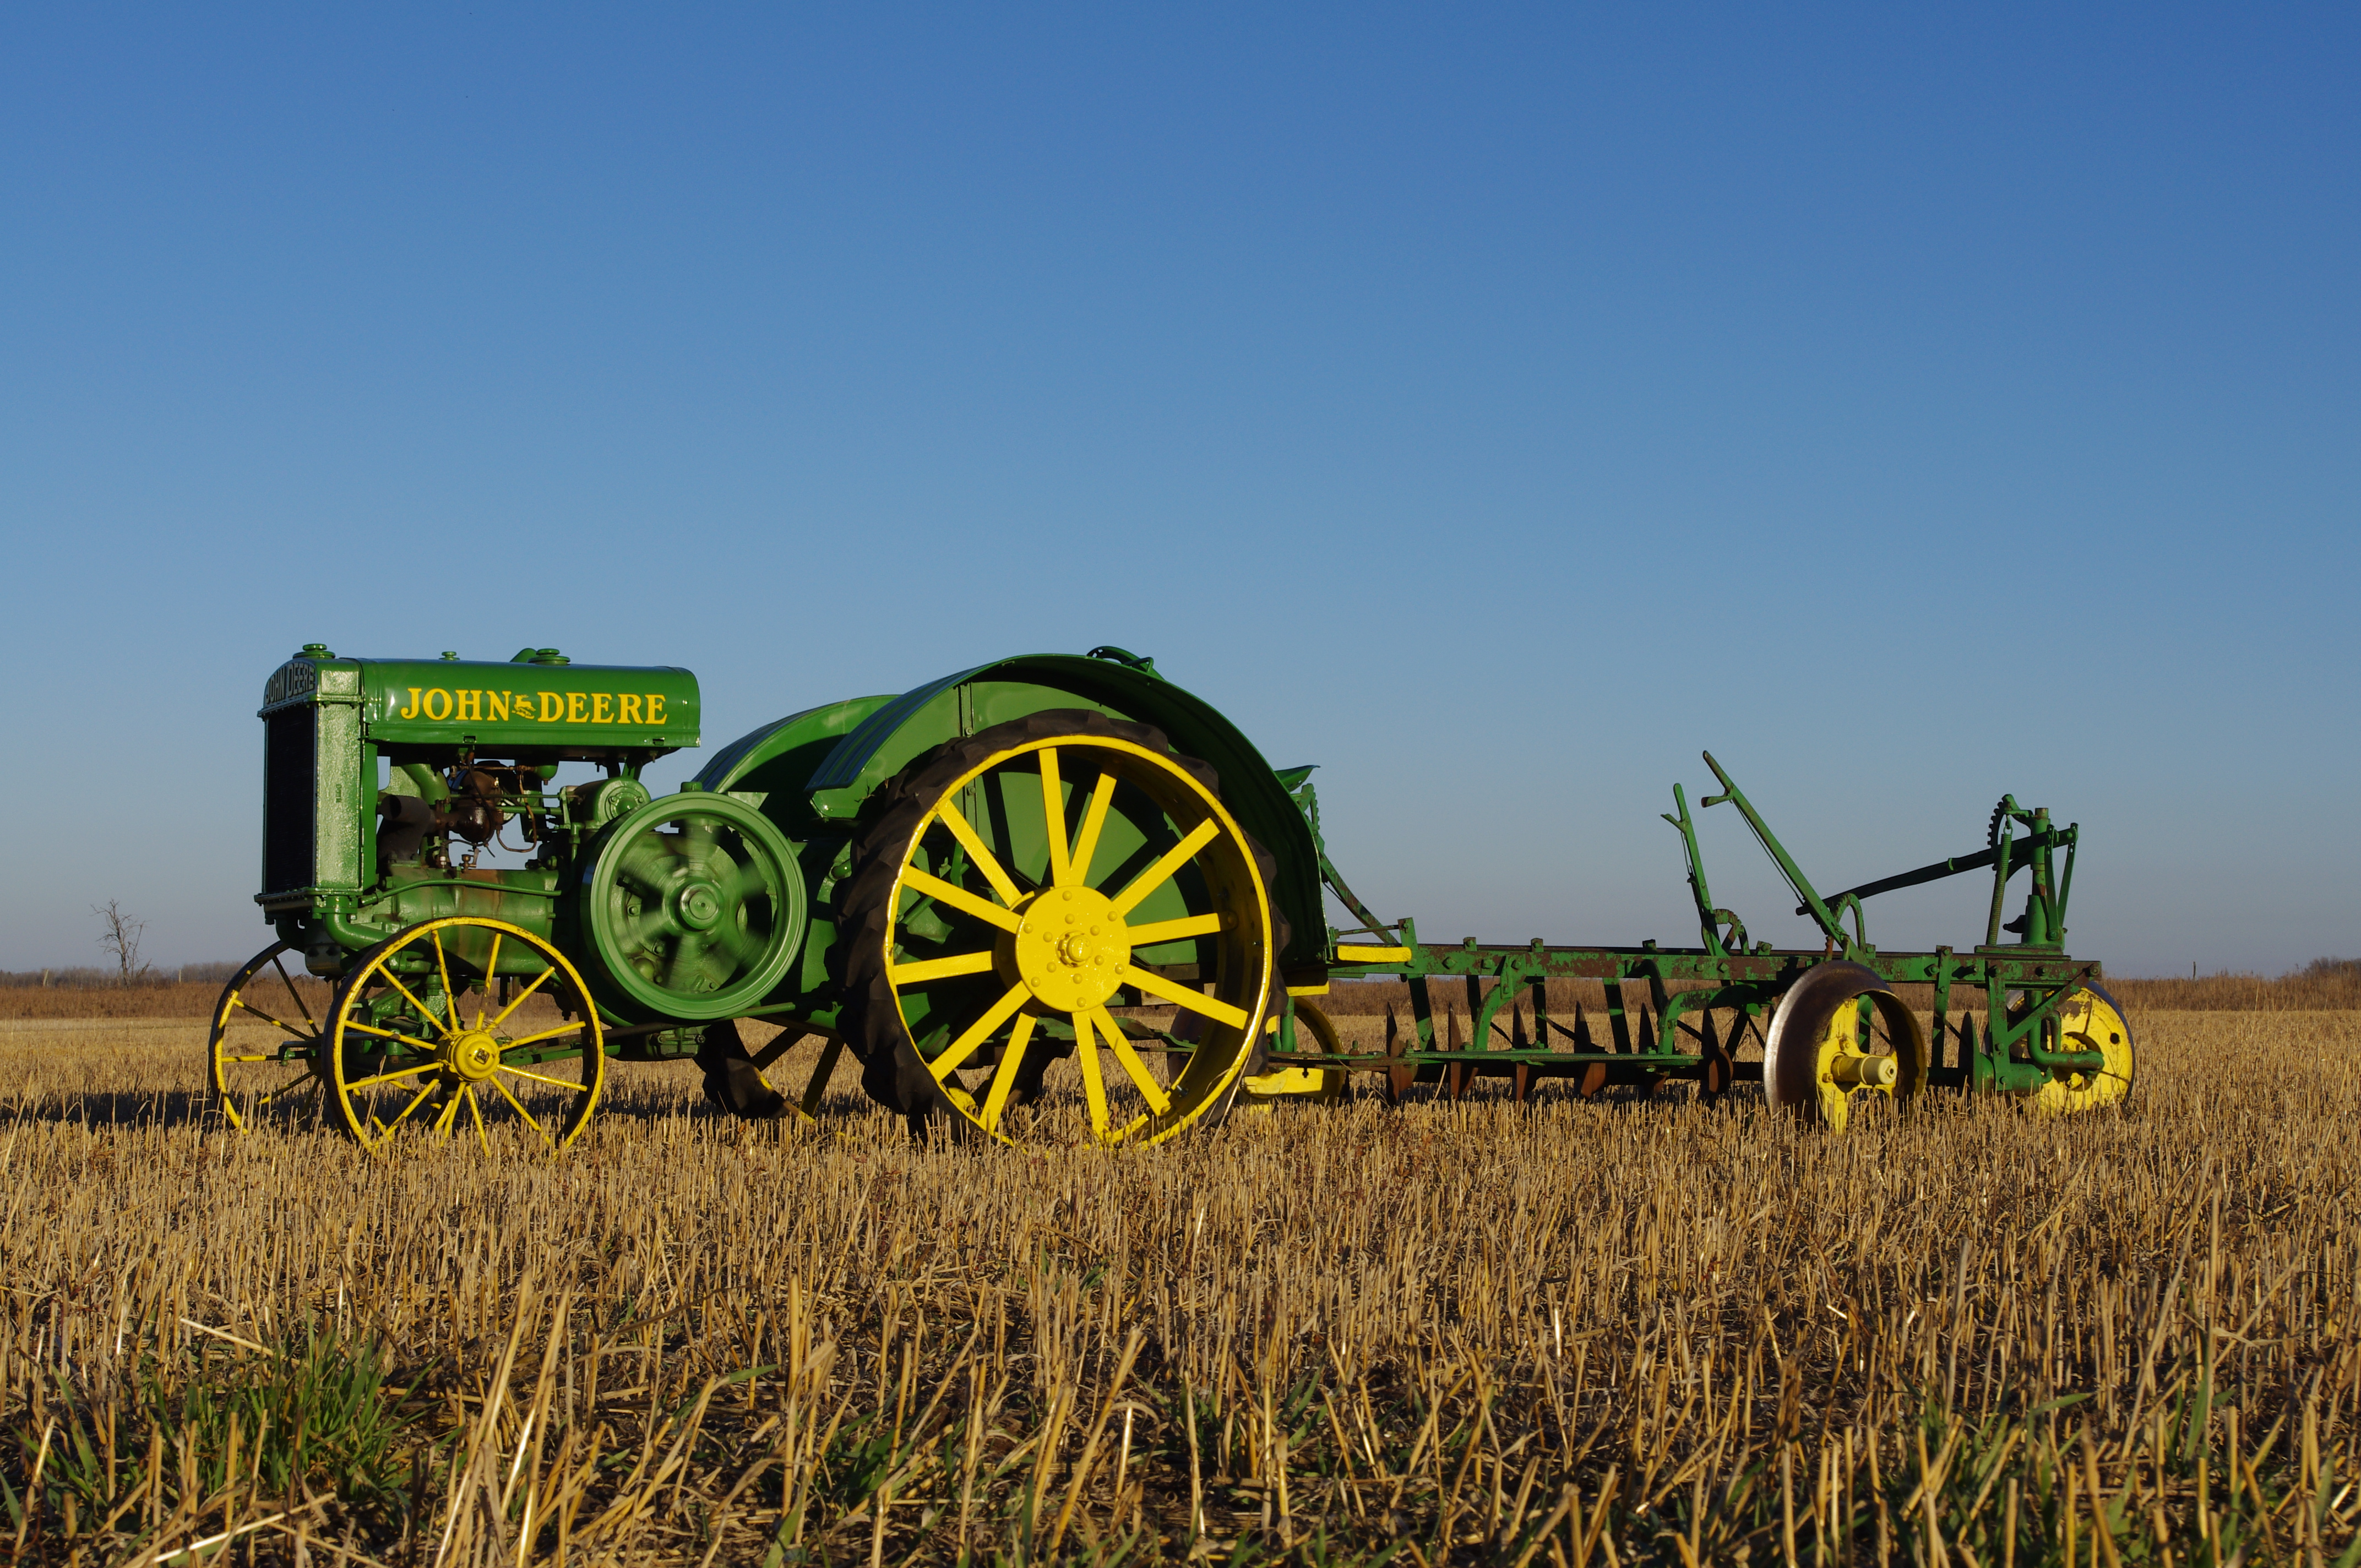 John Deere 4k Ultra HD Wallpaper | Background Image | 4288x2848 | ID:445826 - Wallpaper Abyss